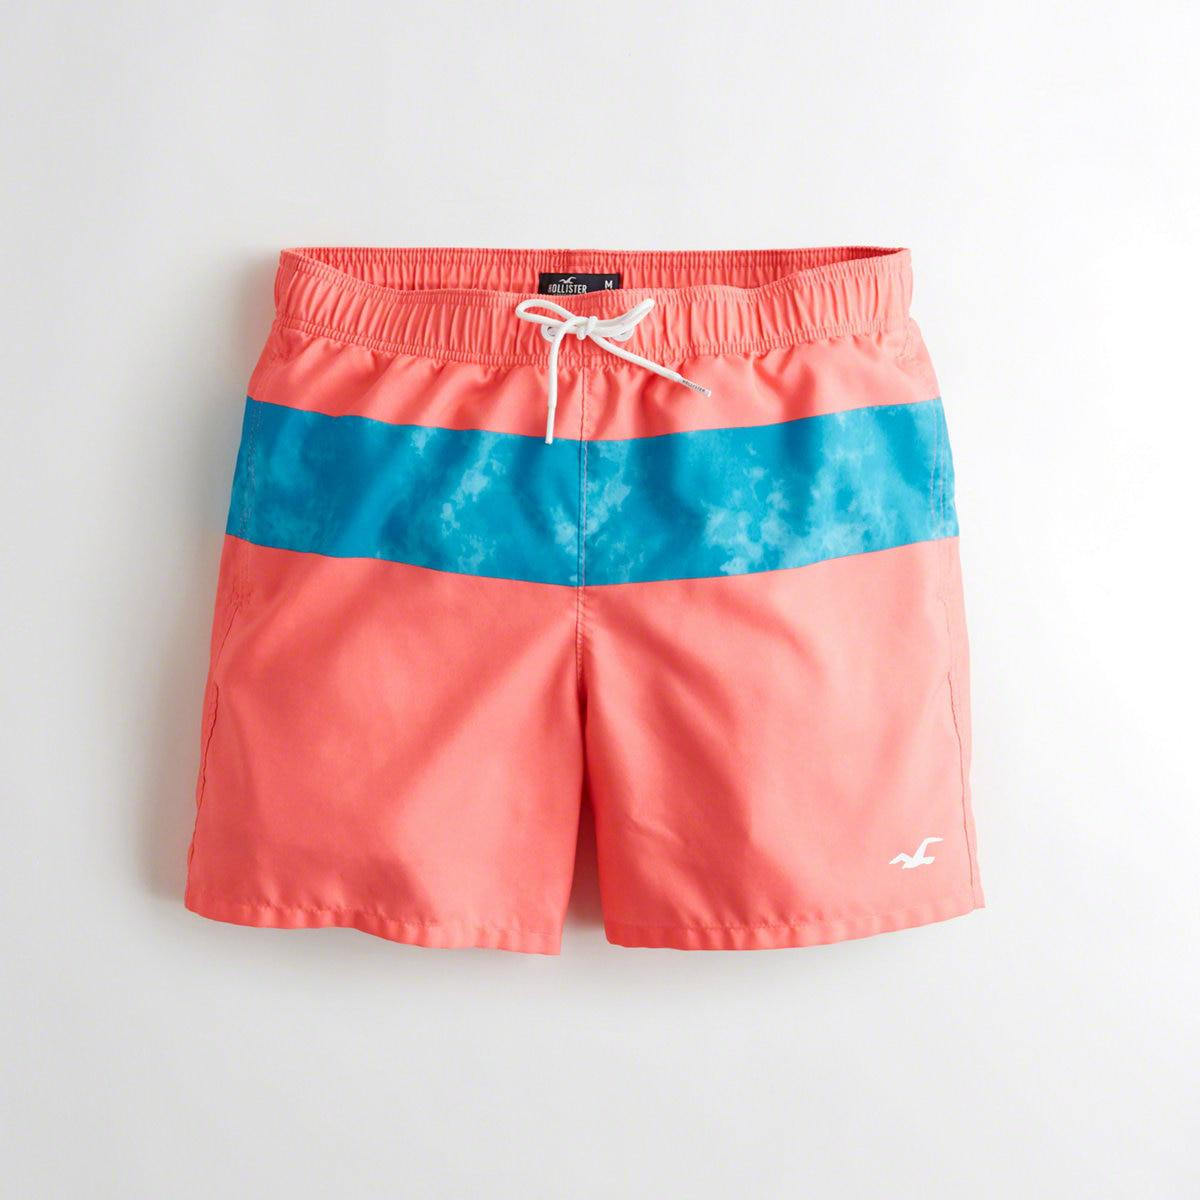 b86ced1e1b Lyst - Hollister Guys Guard Fit Swim Trunks From Hollister for Men